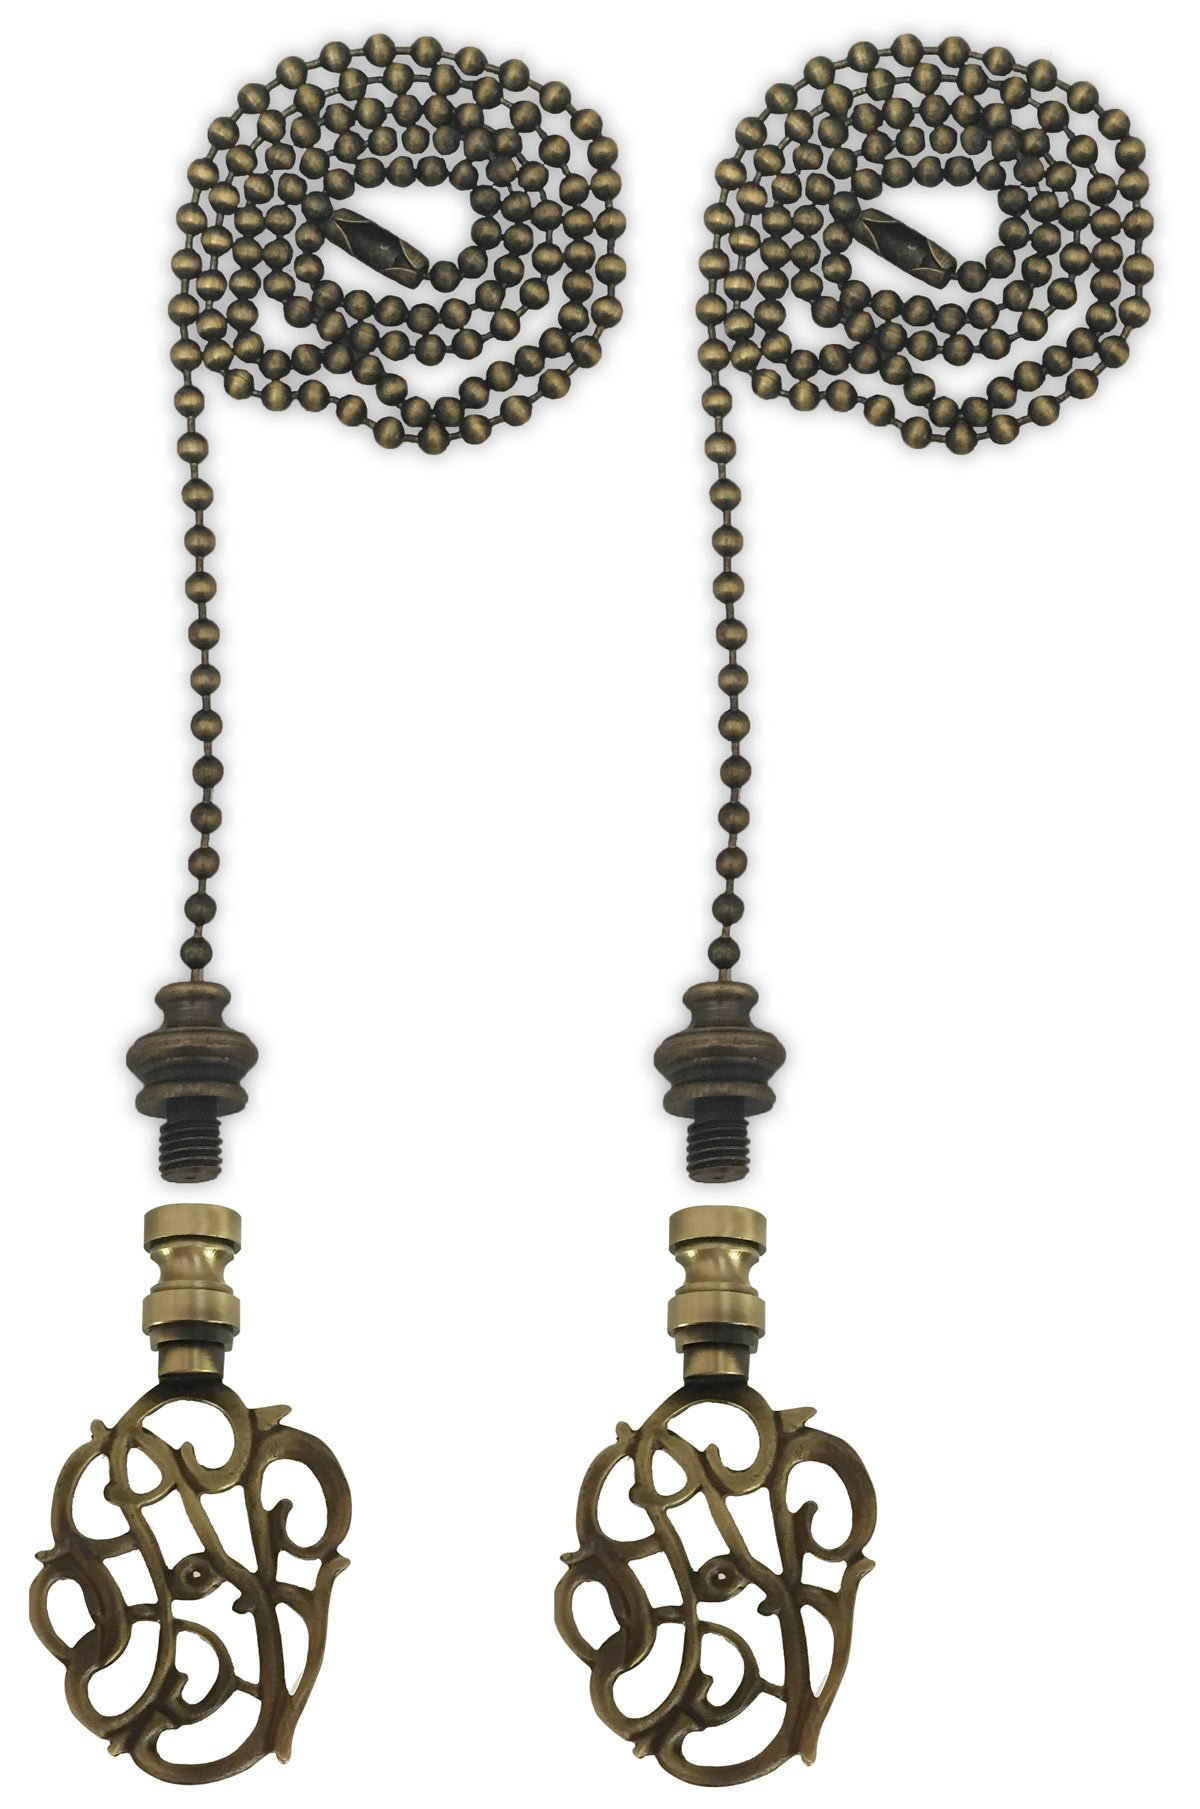 Royal Designs Fan Pull Chain with Hand Carved Caste Floral Finial - Antique Brass - Set of 2